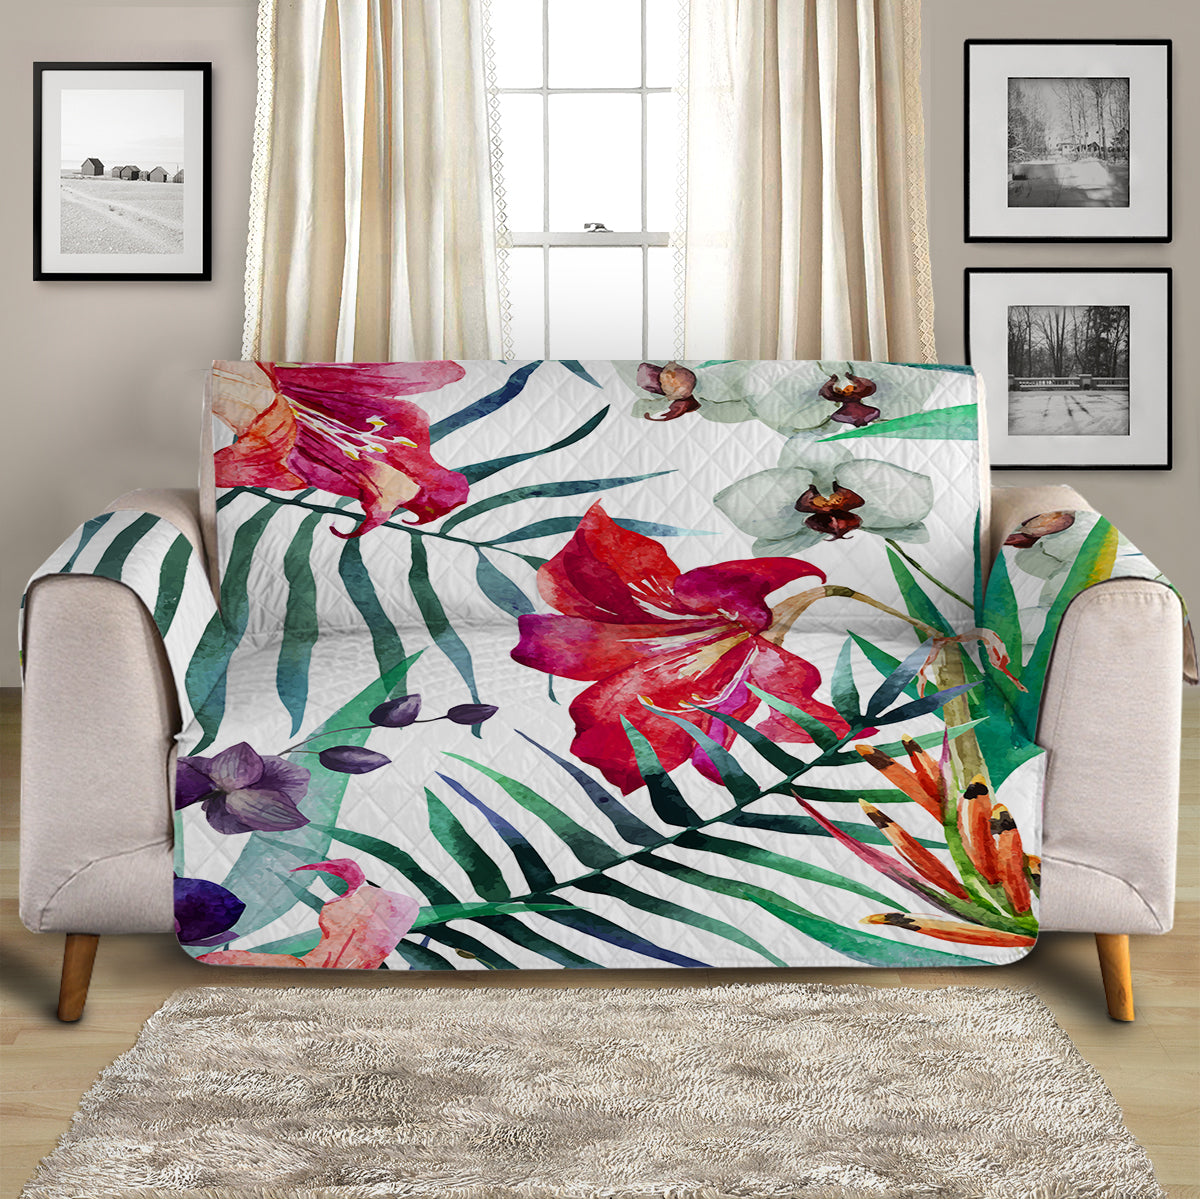 Tropical Floral Sofa Cover